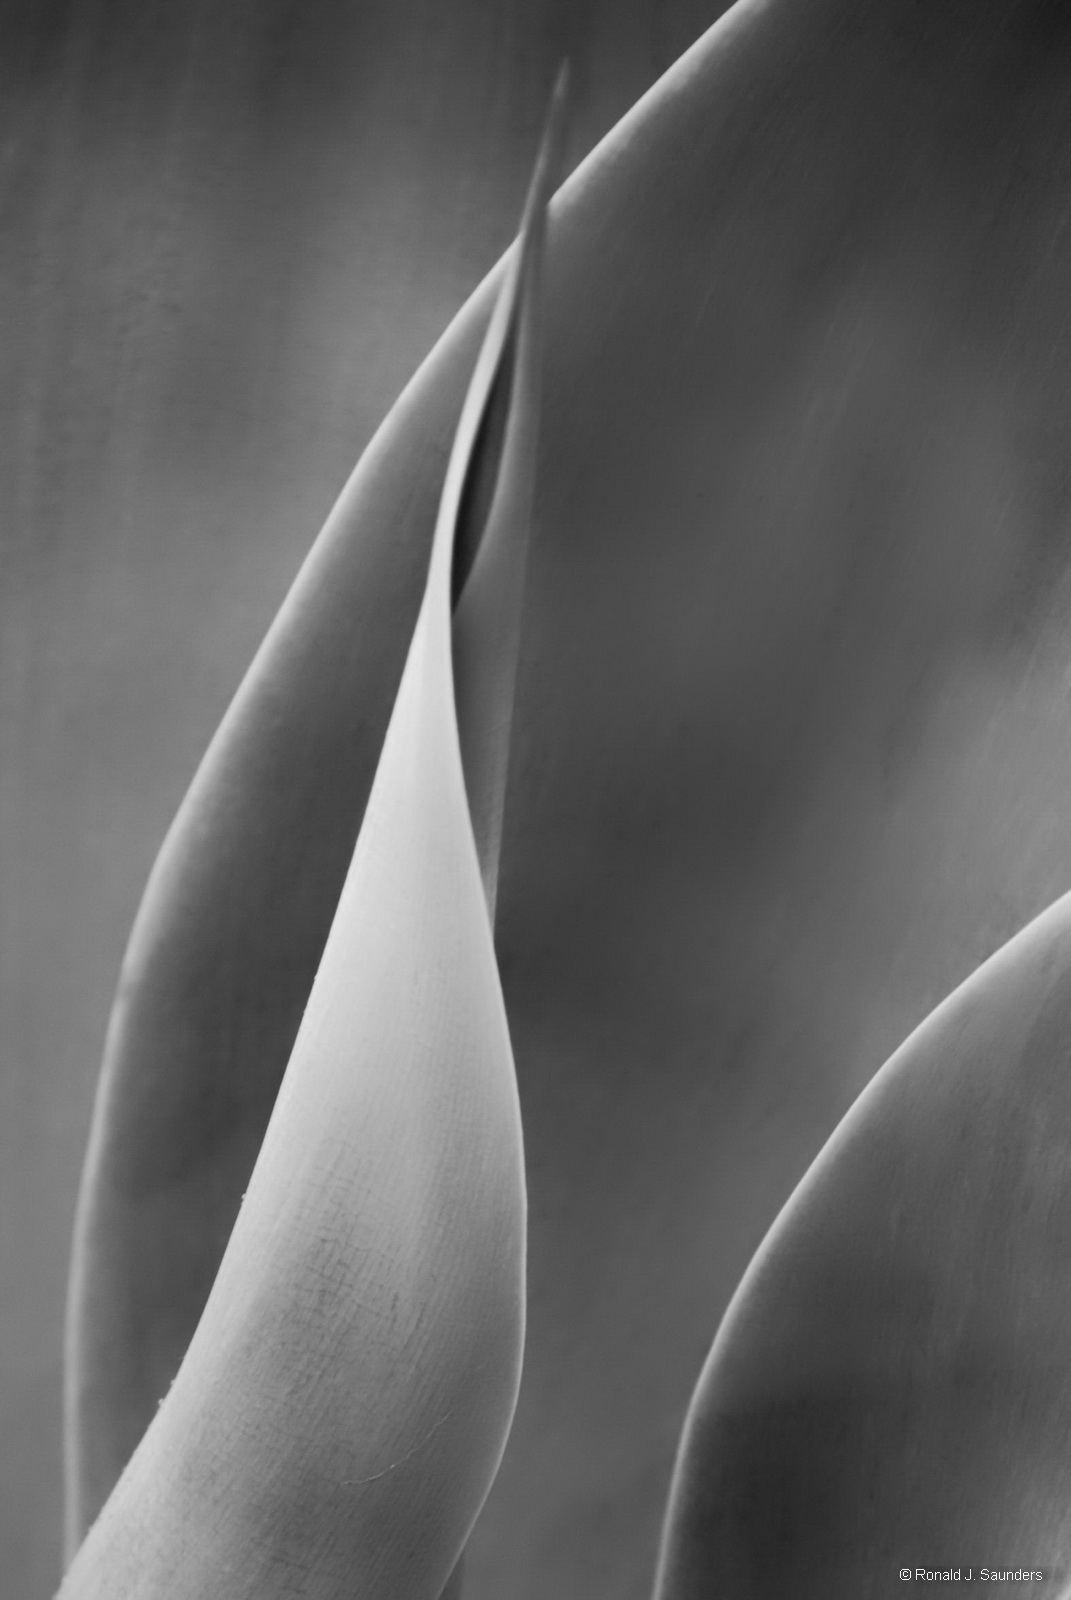 ronald, saunders, digital, photography, image, ronald, foliage, yucca, plant, black, white, soft, peaceful, photo